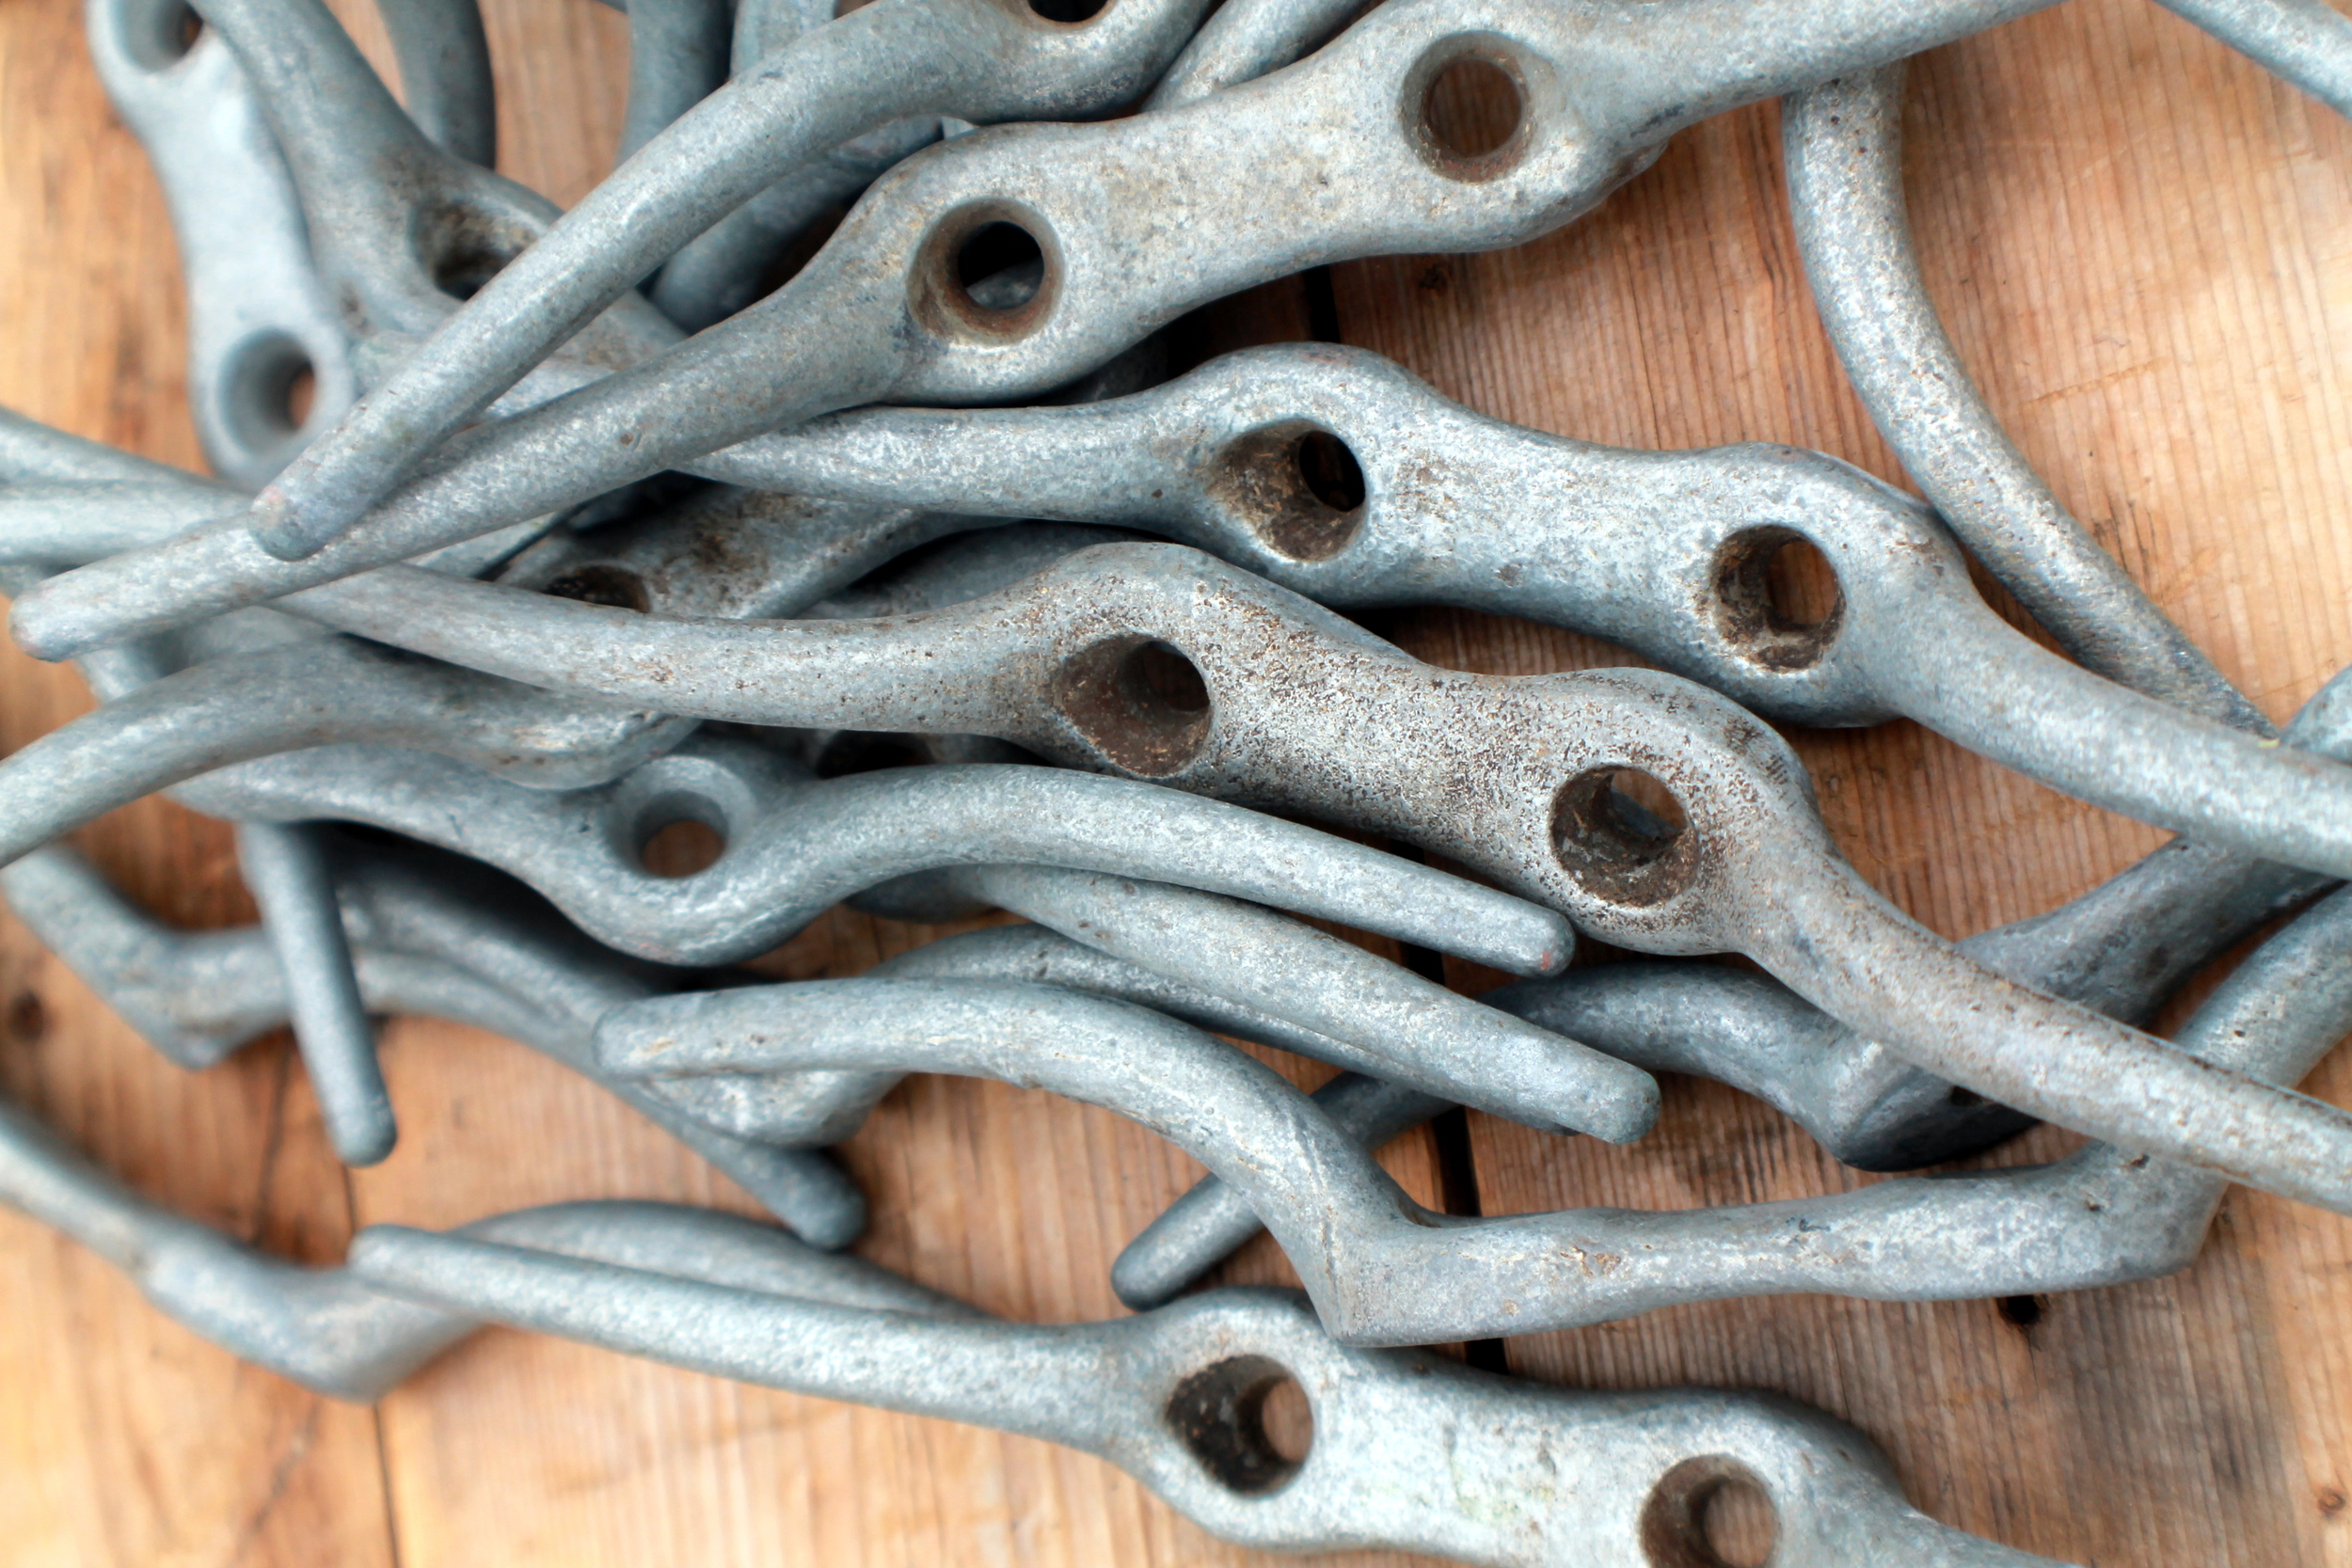 These old sailing hooks can be used as tie backs for curtains in a boys room or a home in a nautical setting. They could even be reimagined as a door or drawer handle. Give them a more dramatic look by painting them a fun color.